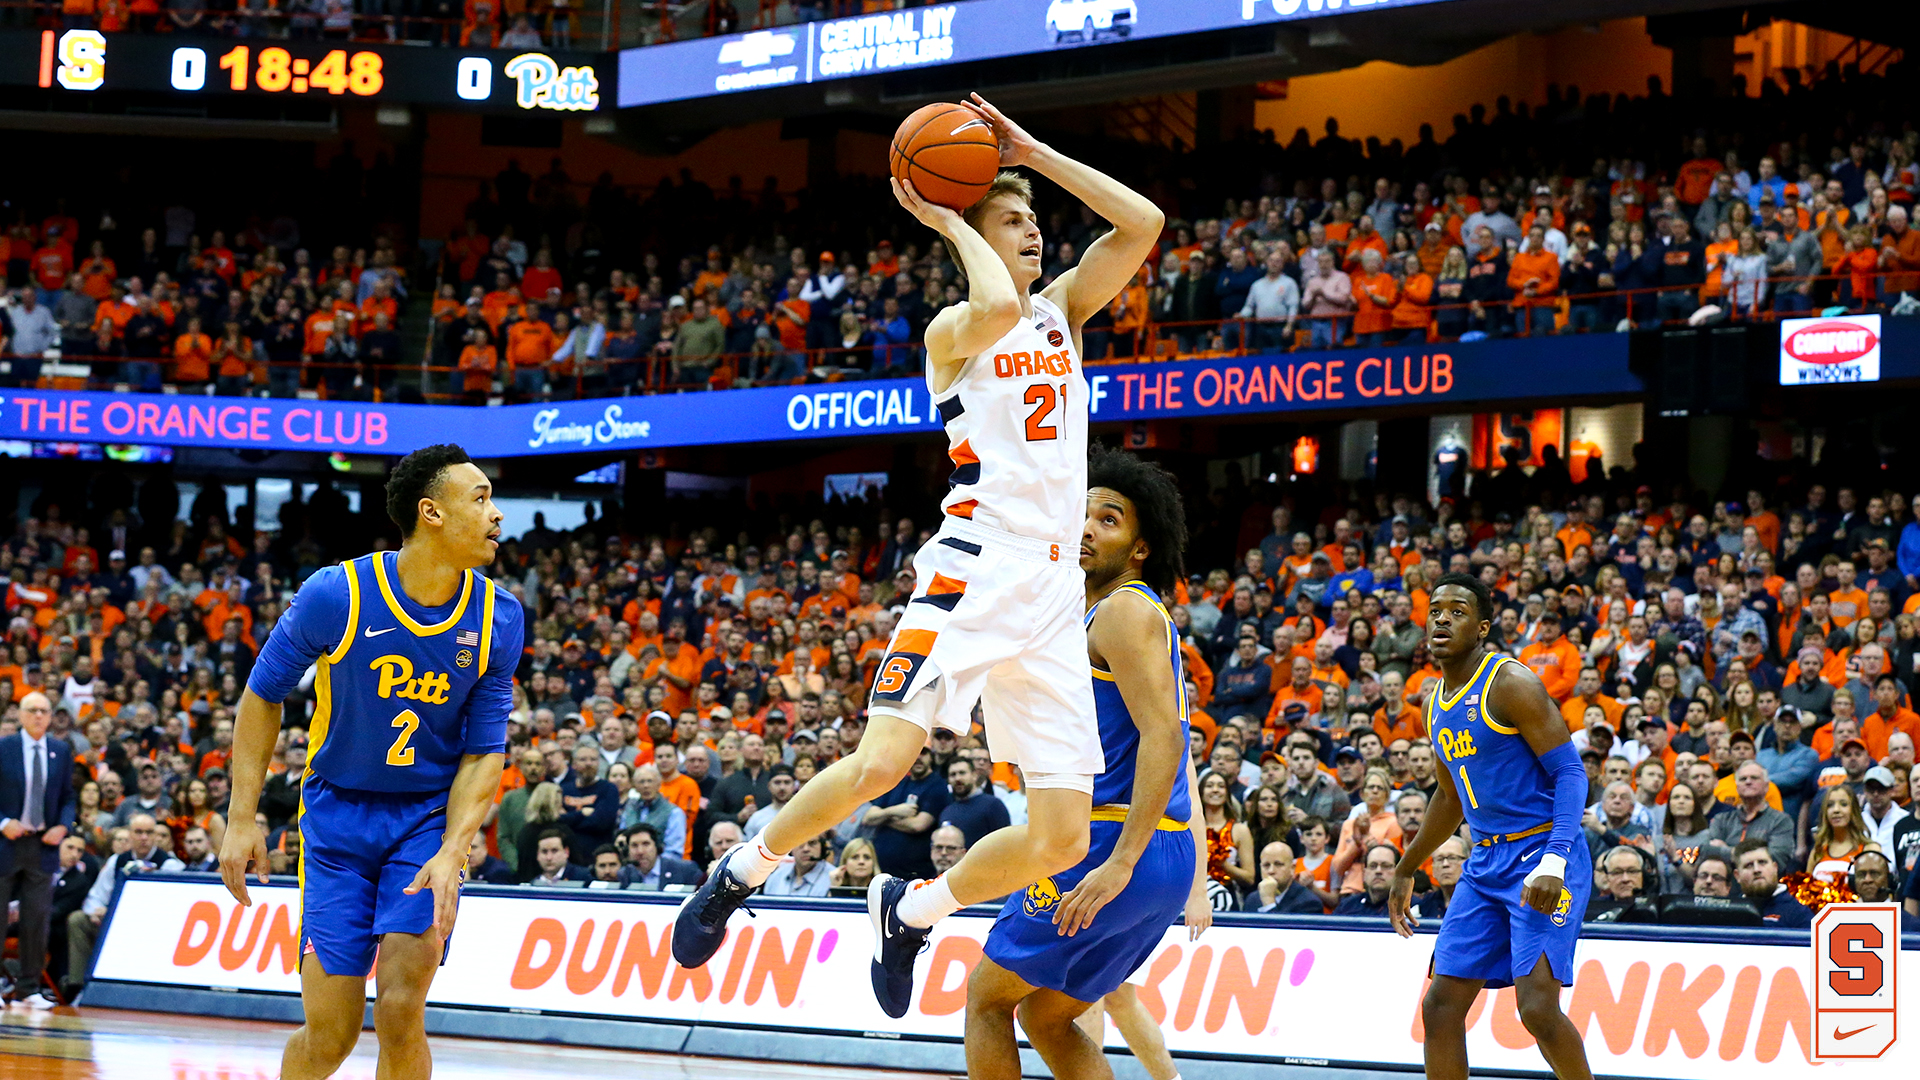 ORANGE GAME DAY: Syracuse hosts Pittsburgh this afternoon, looking for fifth straight win (preview & info)